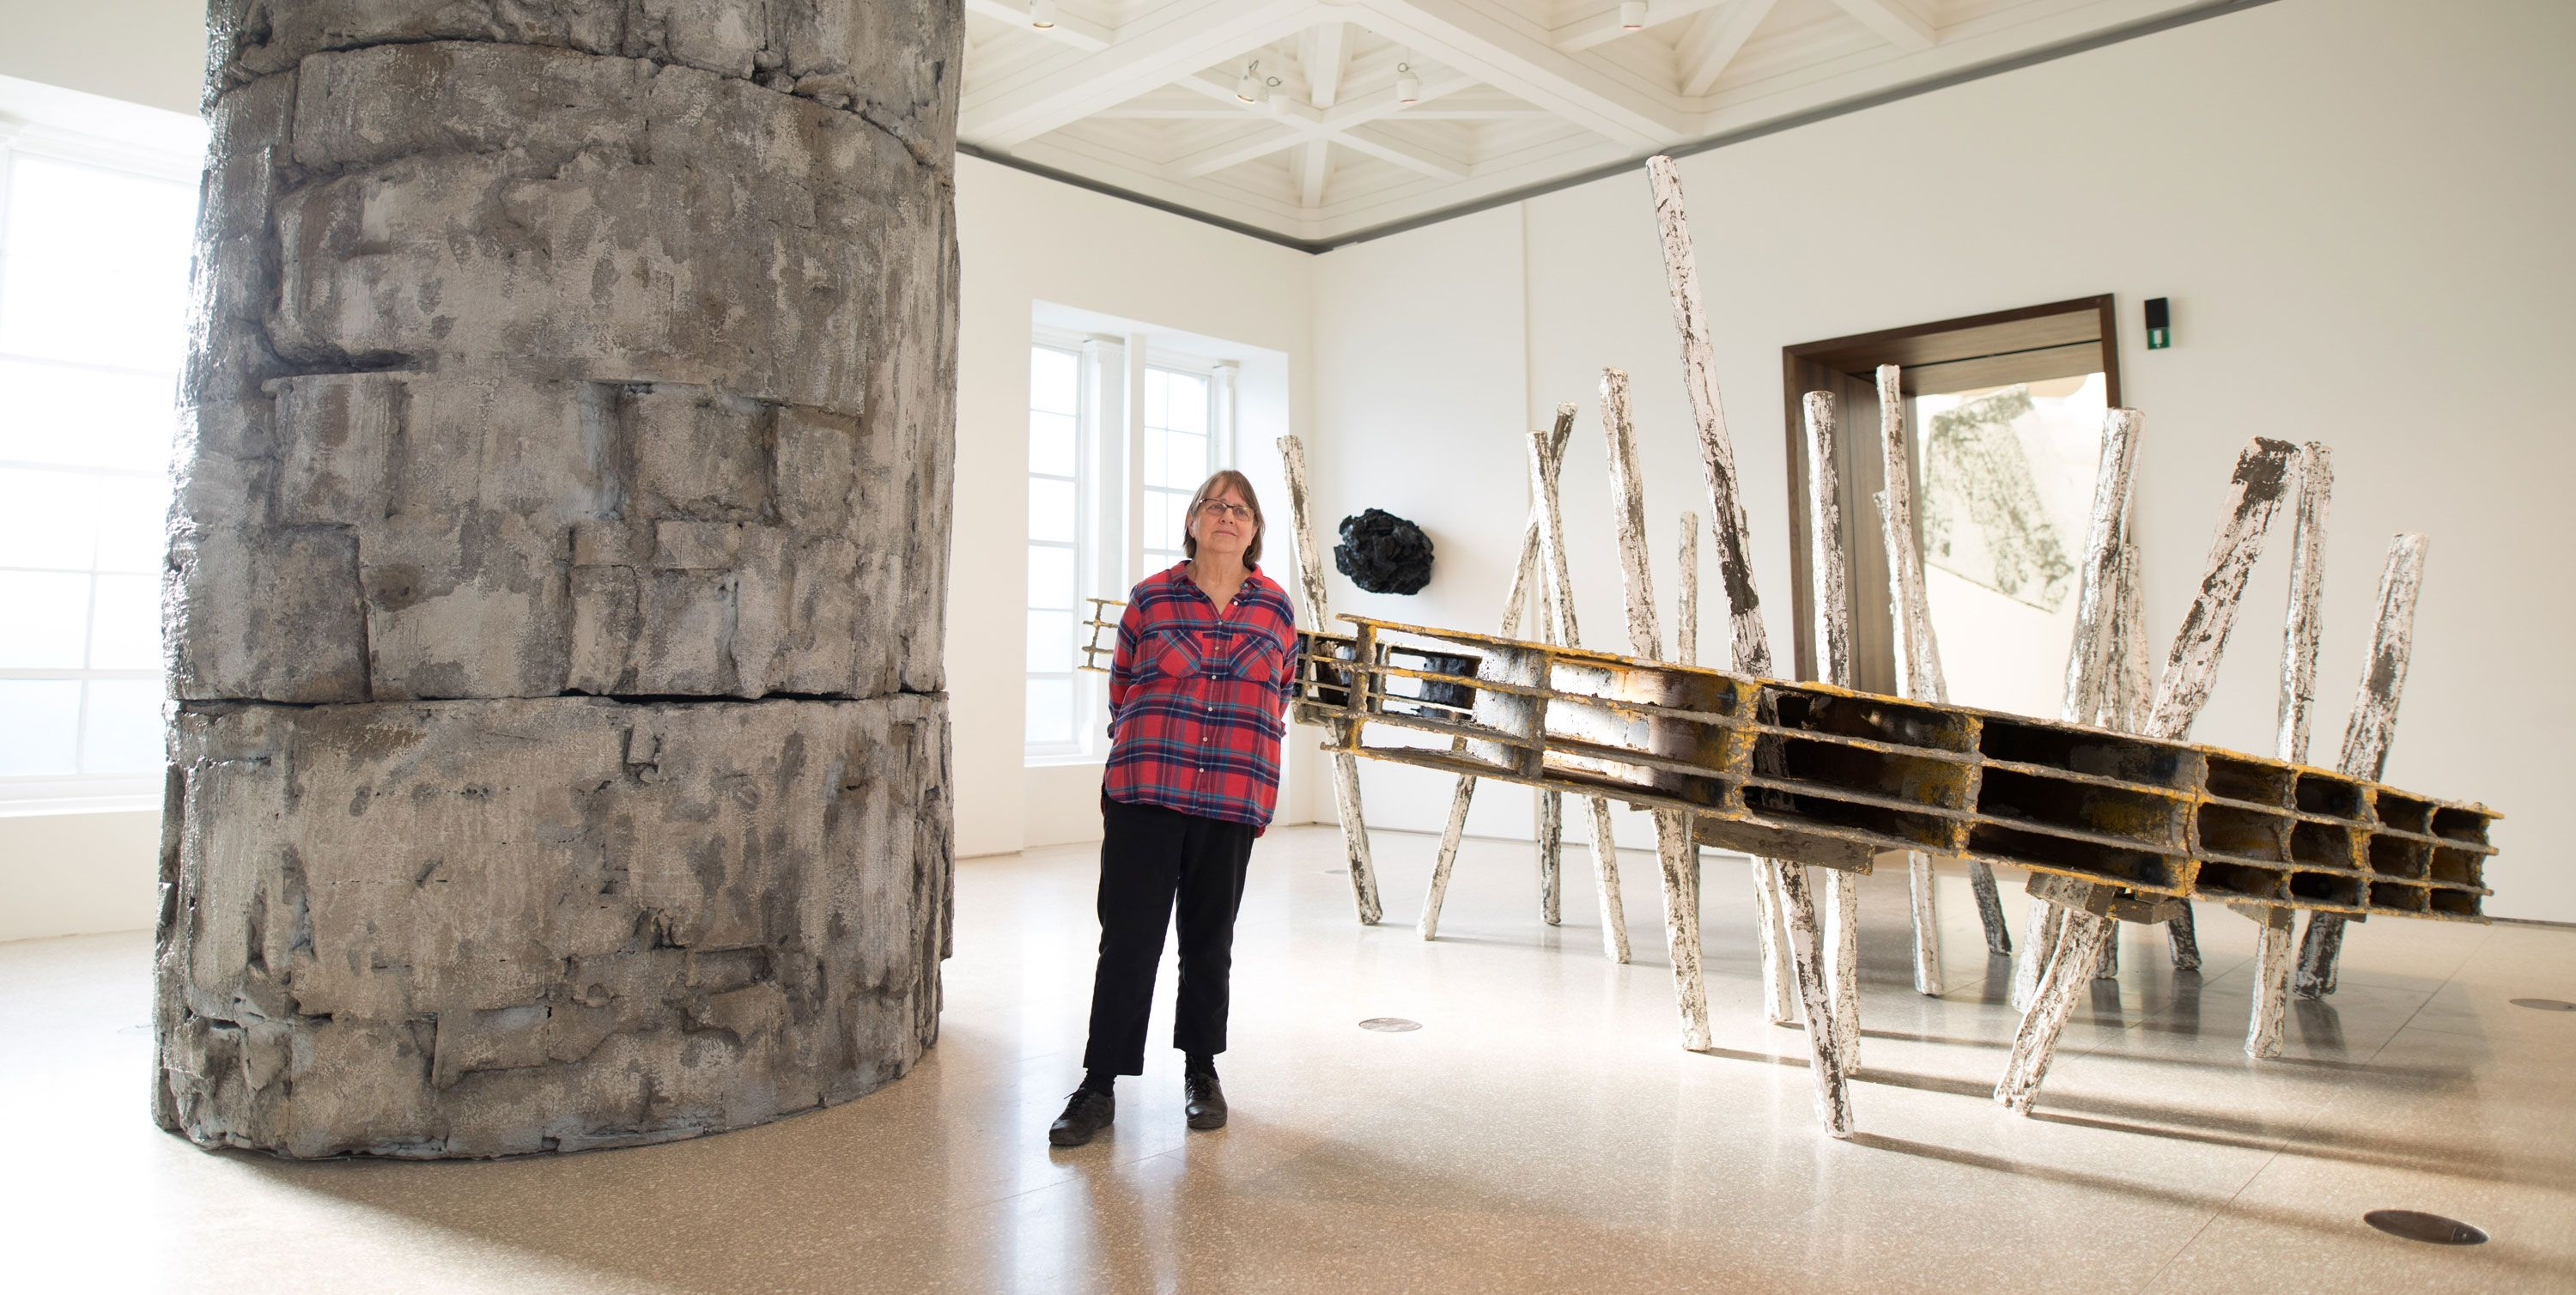 Phyllida Barlow has an adventurous new exhibition at the Royal Academy